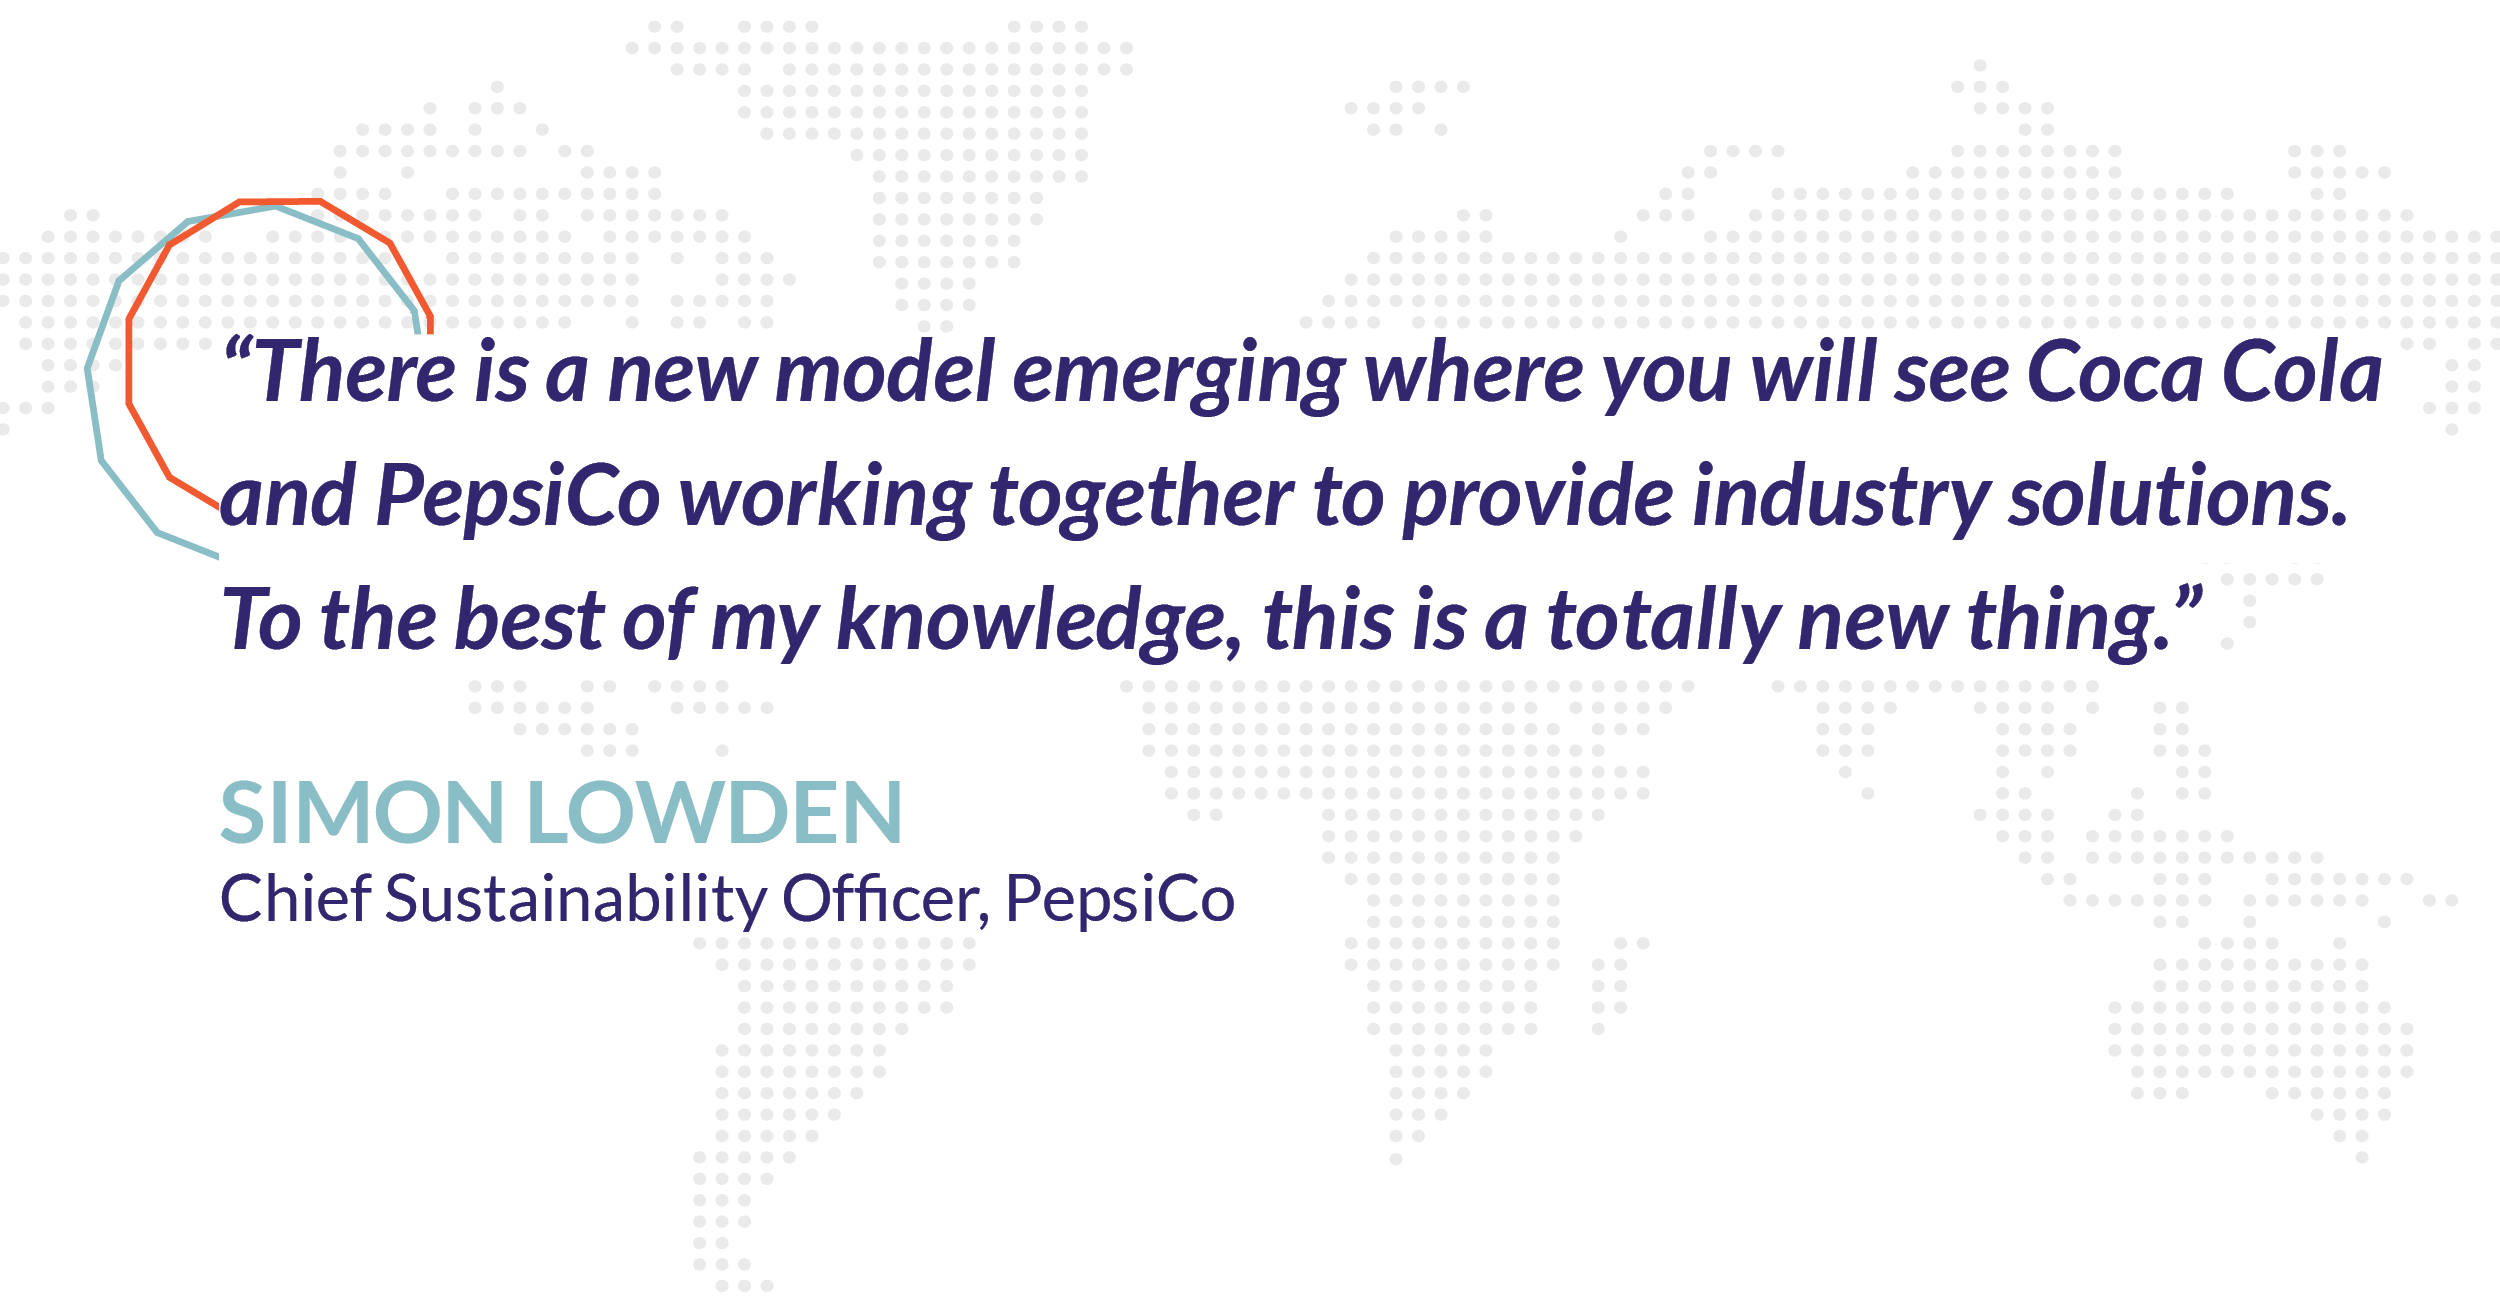 PepsiCo Simon Lowden quote